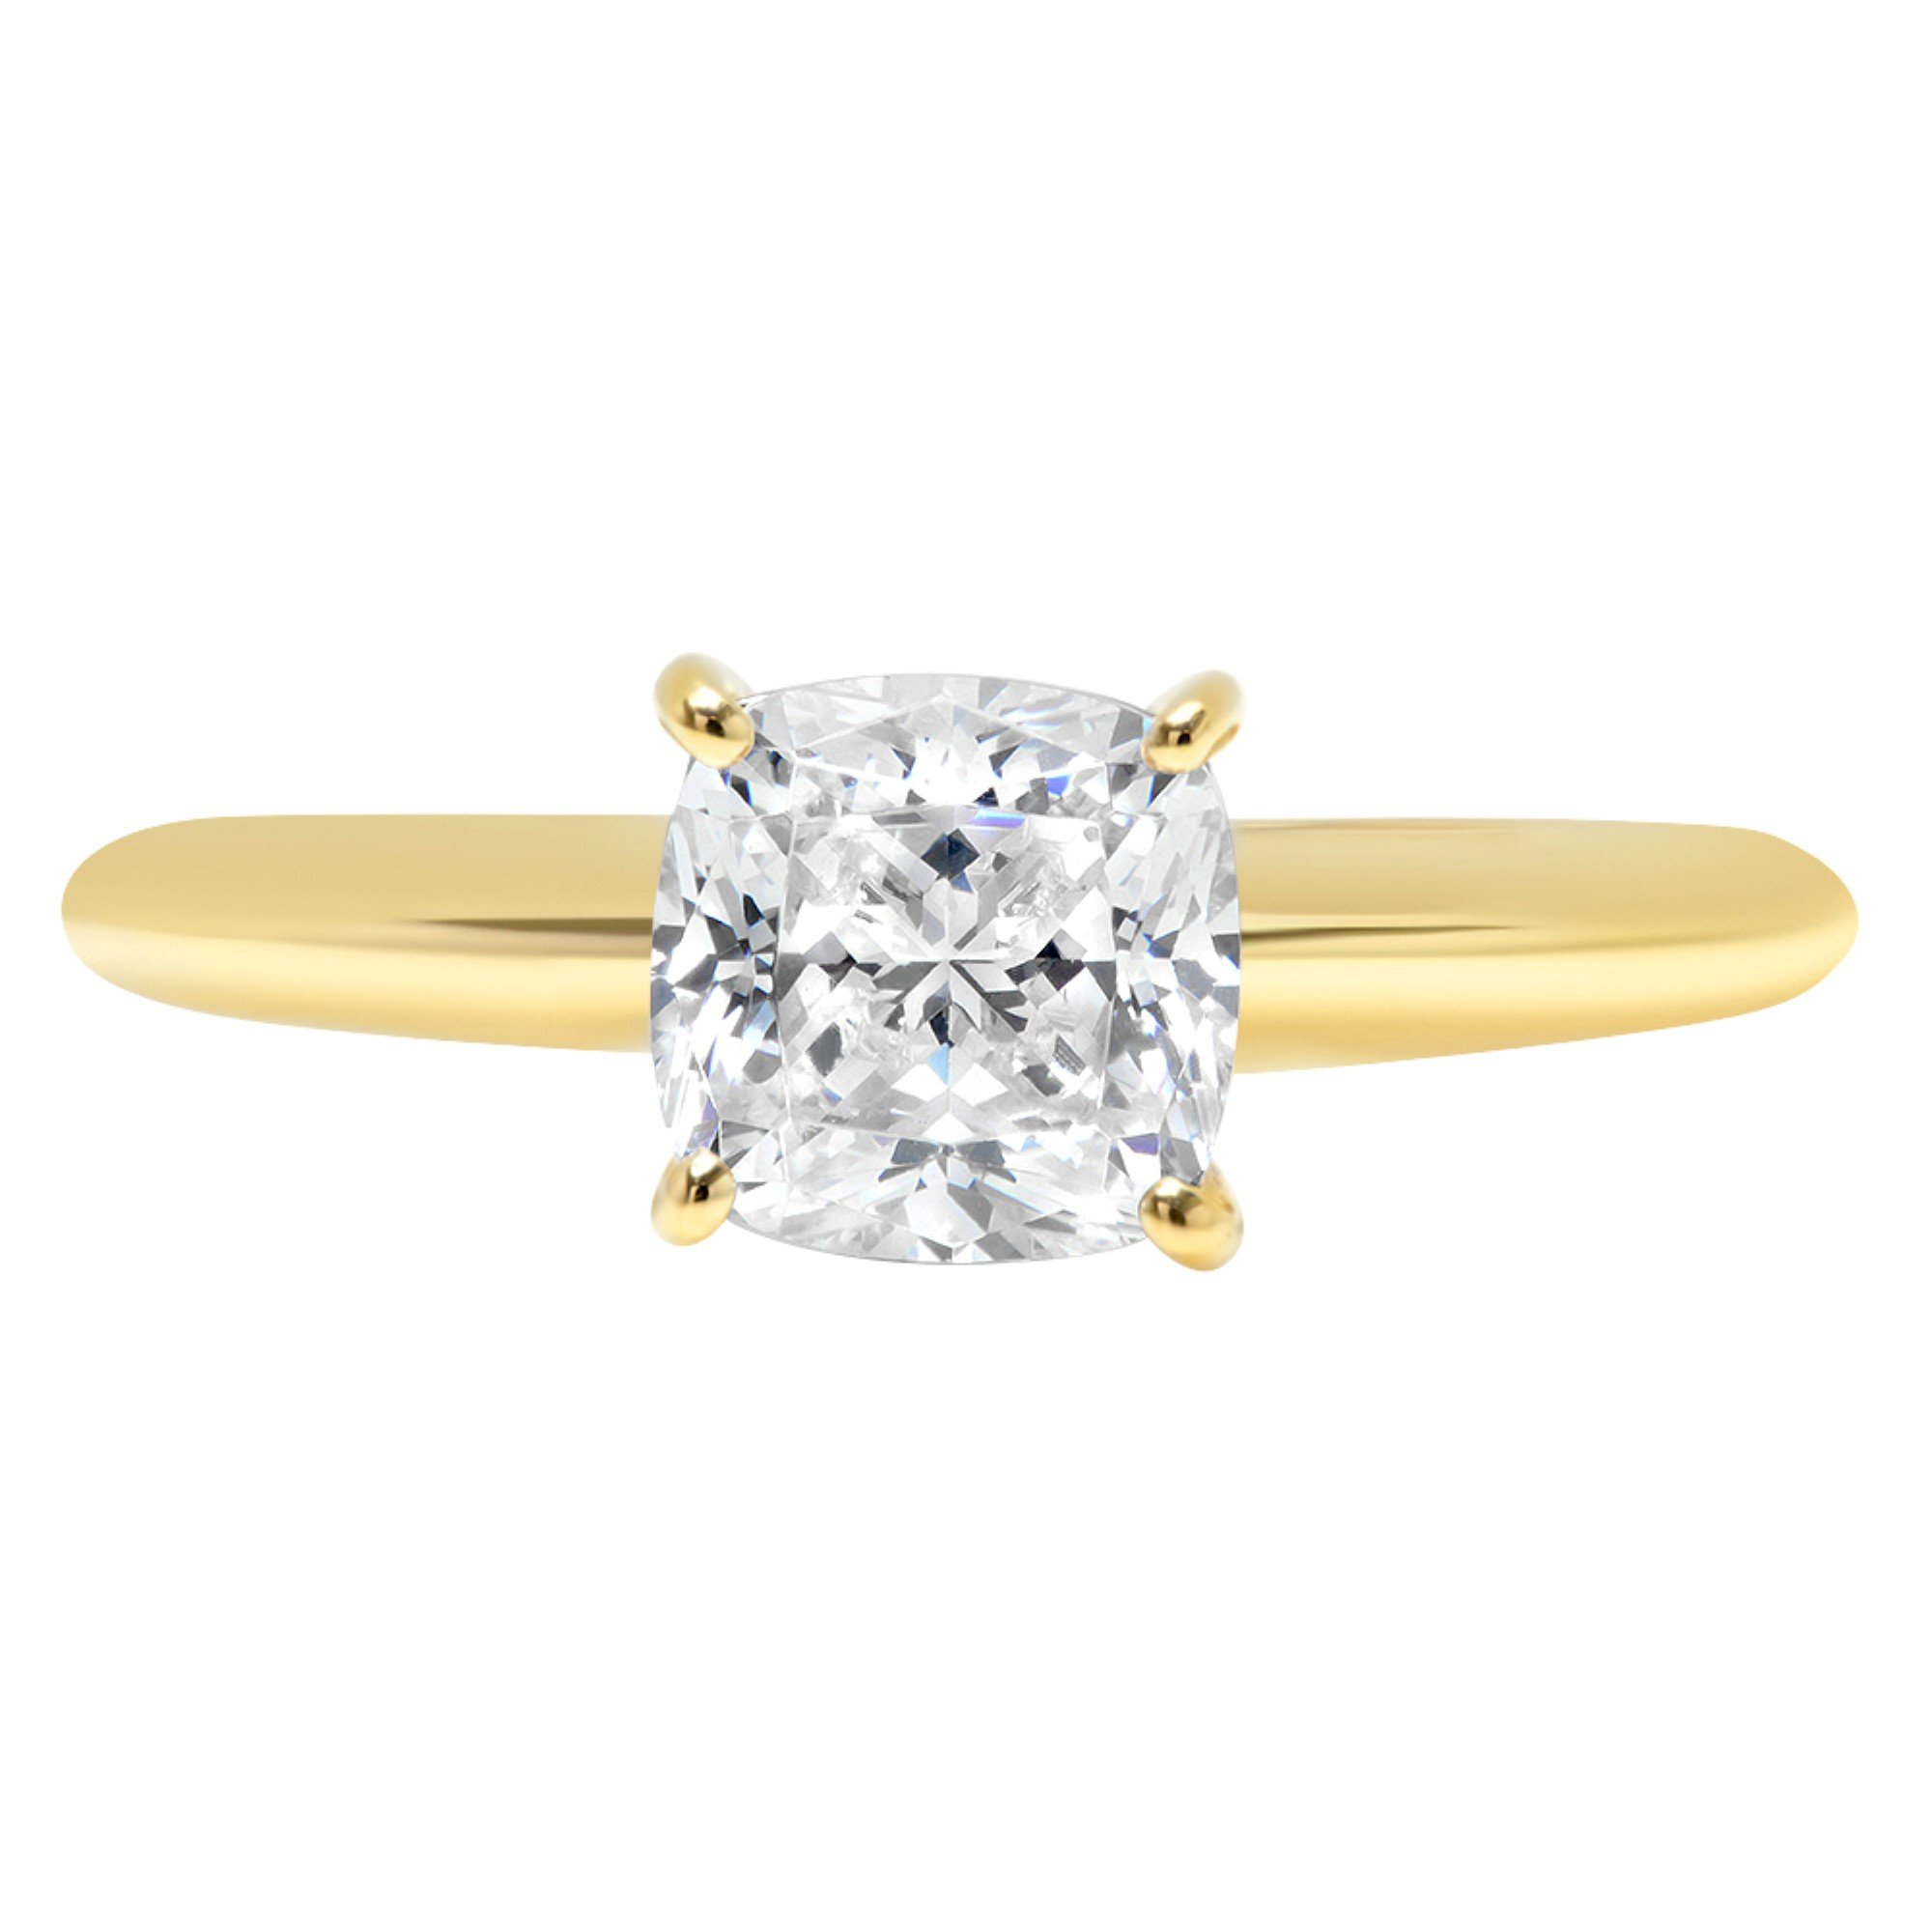 1.50 ct Brilliant Cushion Cut Solitaire Highest Quality Moissanite Ideal VVS1 D 4-Prong Engagement Wedding Bridal Promise Anniversary Ring in Solid Real 14k Yellow Gold for Women